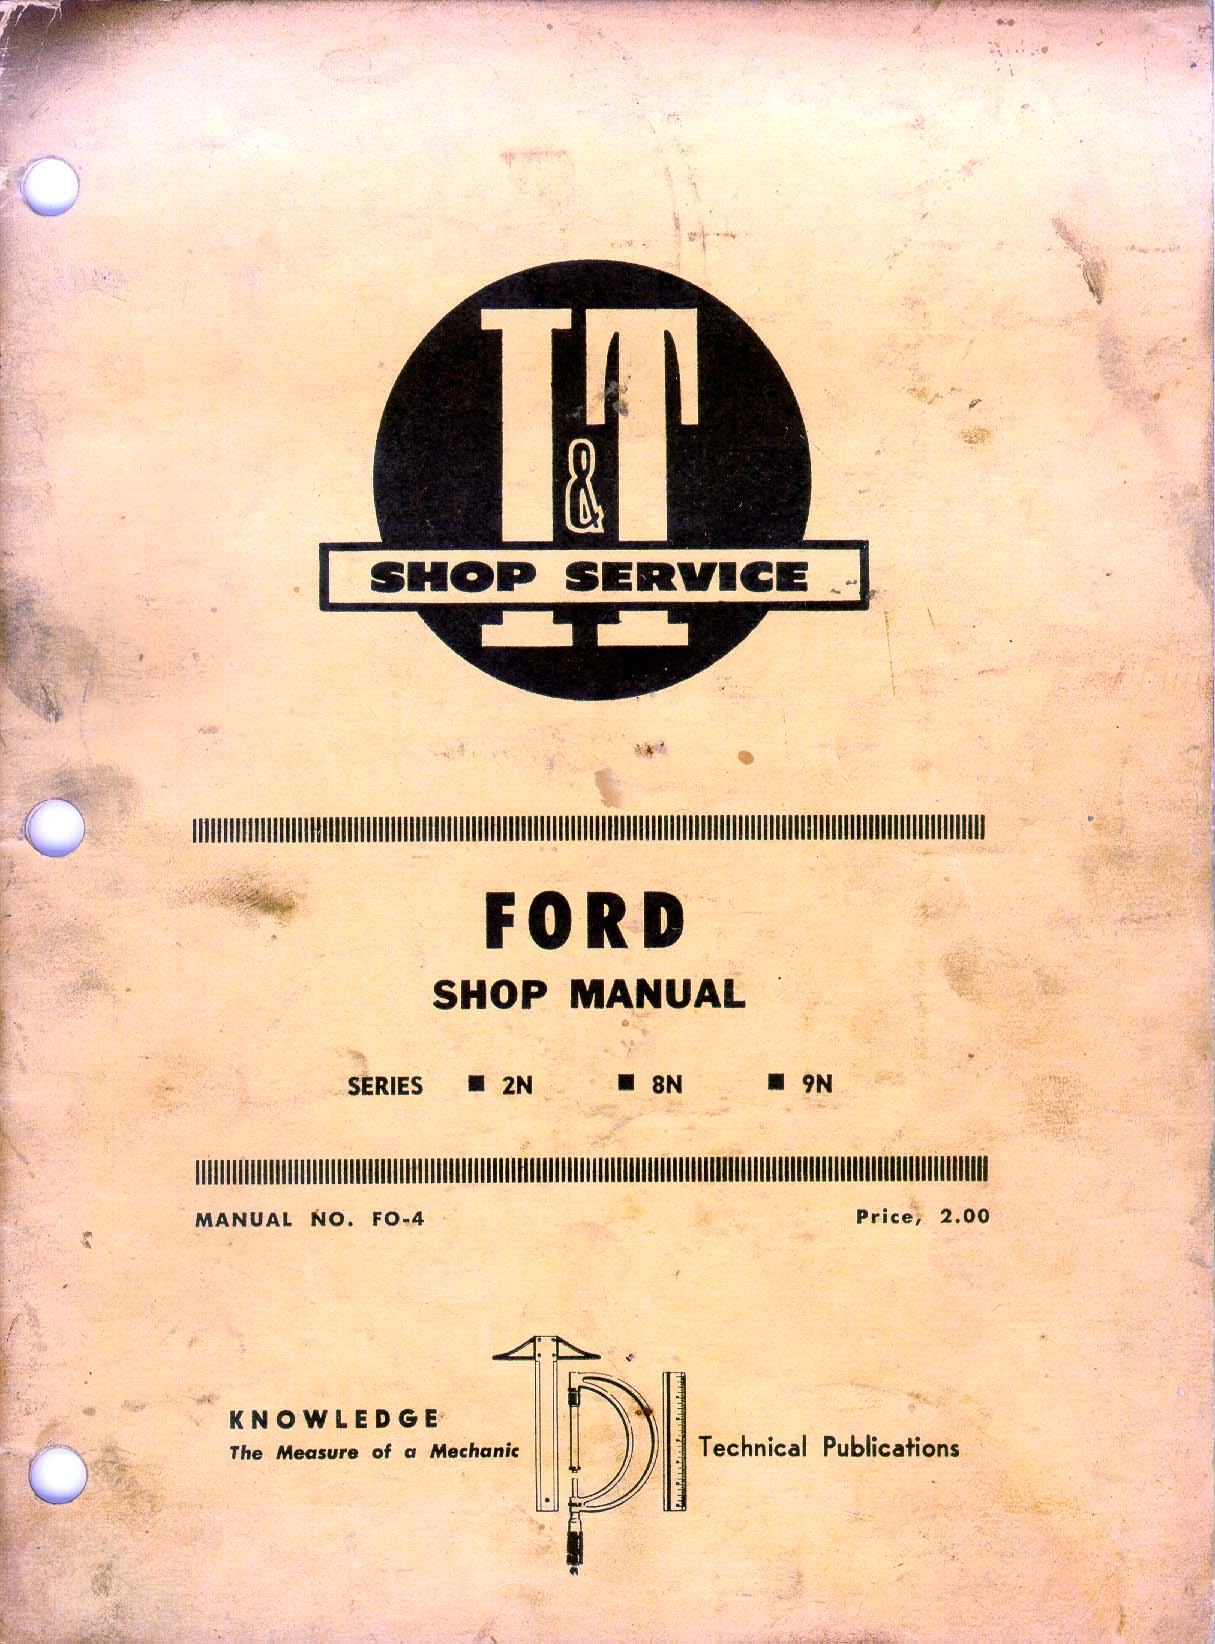 Fo4 Ford 8n Manual Daily Instruction Guides 1949 Tractor 2n Wiring Diagram 1953 I T Fo 4 Service 9n Rh Ntractorclub Com 1952